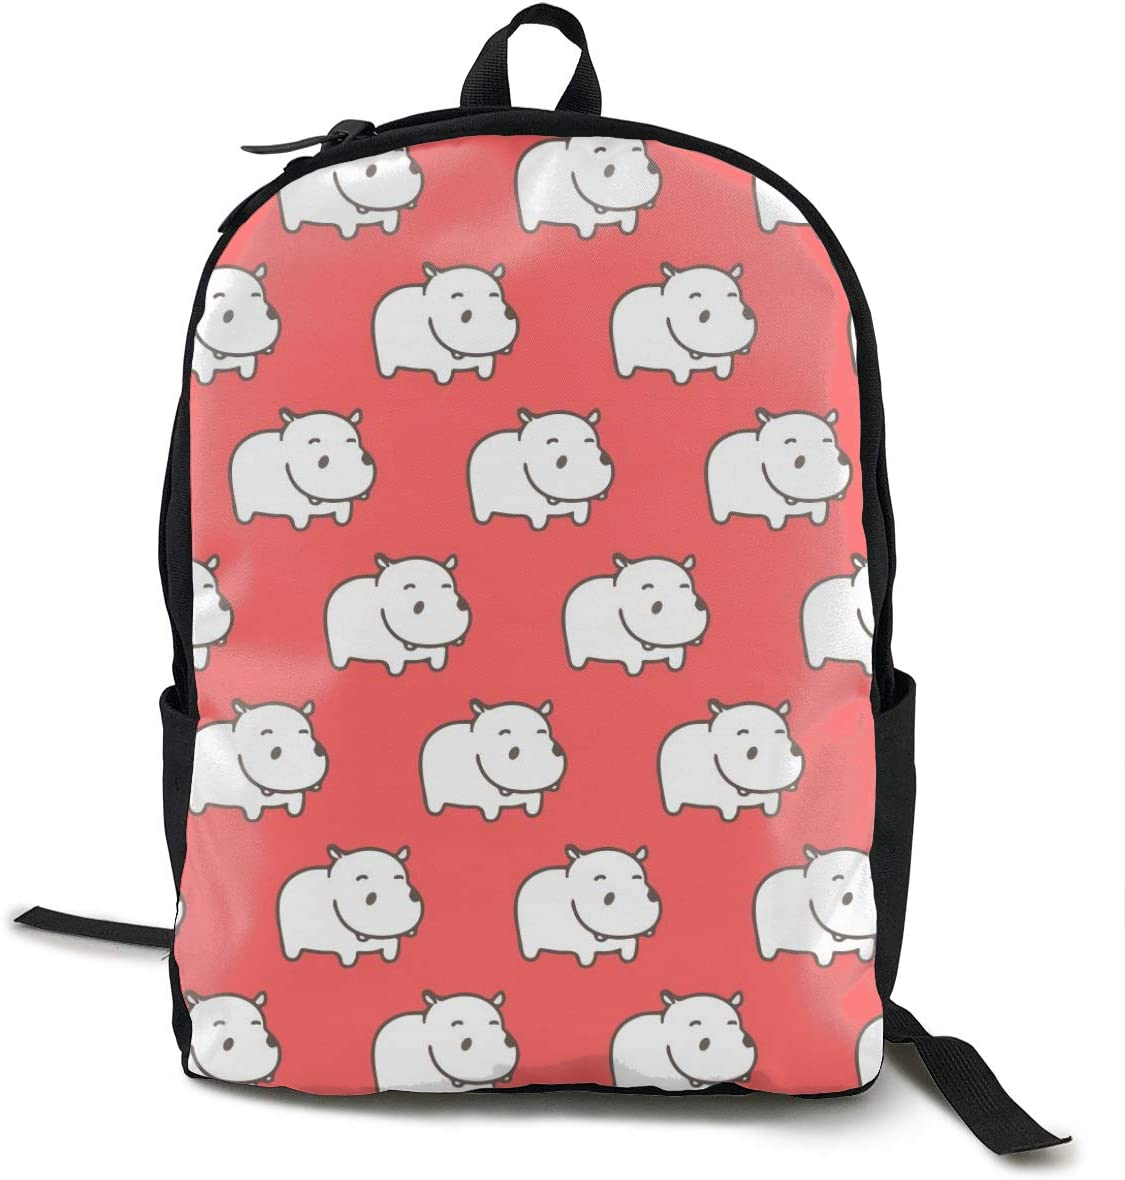 NiYoung Unisex Fashion Lightweight School College Backpack Casual Daypack Travel Business Outdoor Laptop Backpack with Side Pockets (White Hippo Pink)